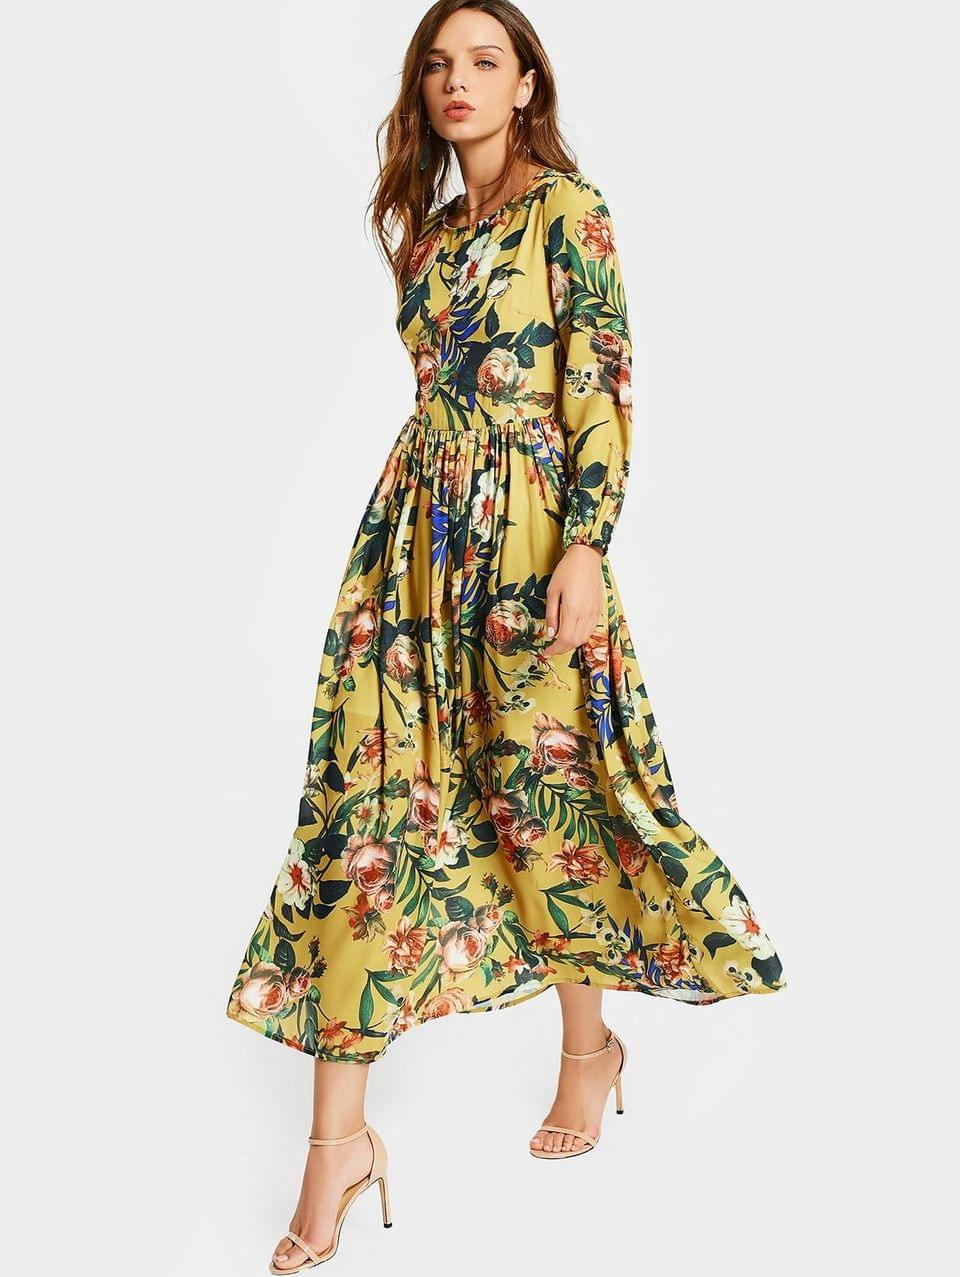 Women's Round Collar Floral Print Long Sleeve Dress - Floral M